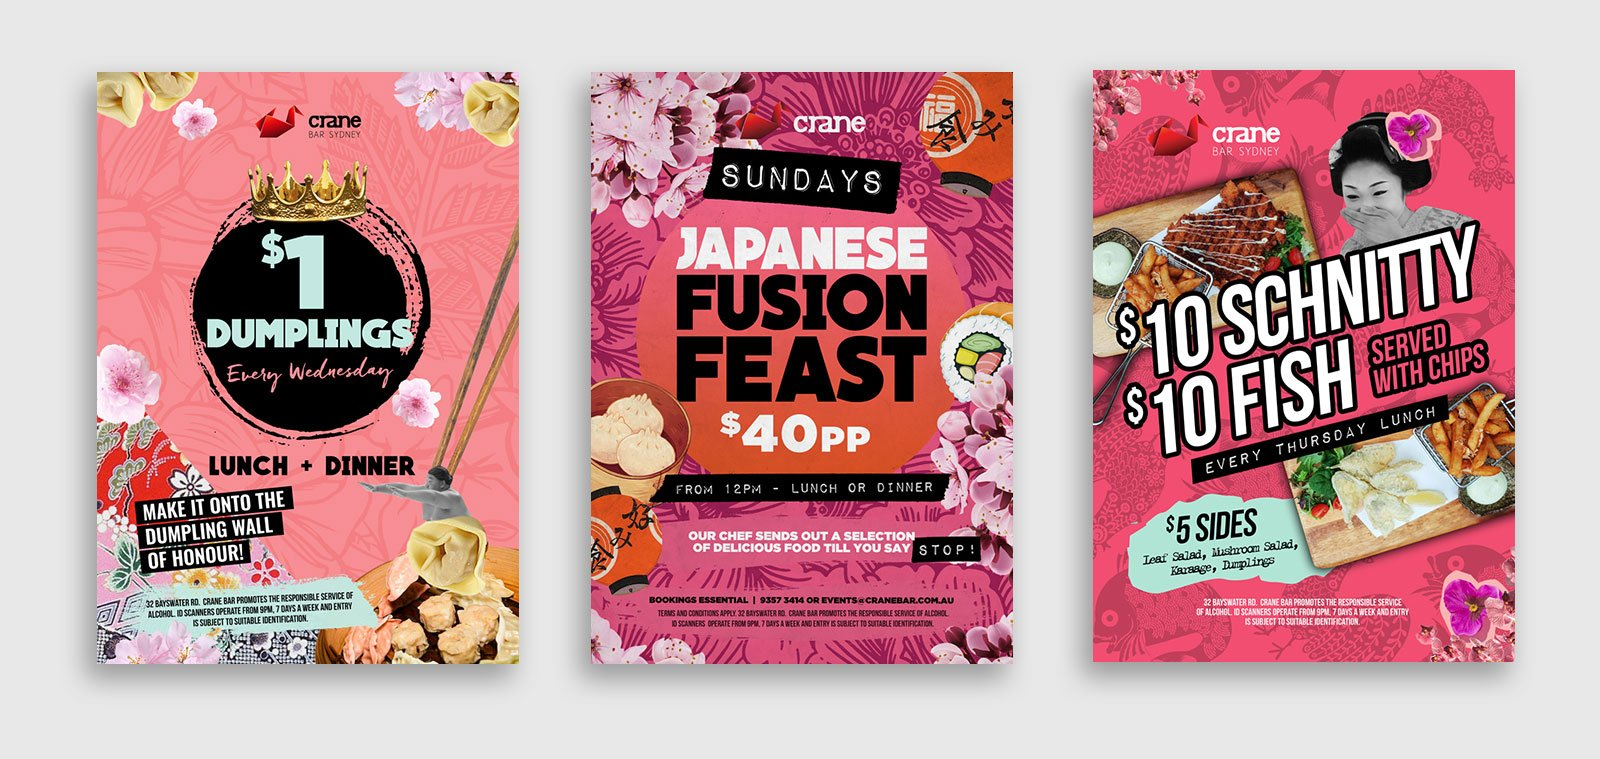 Another three poster designs for Crane Bar